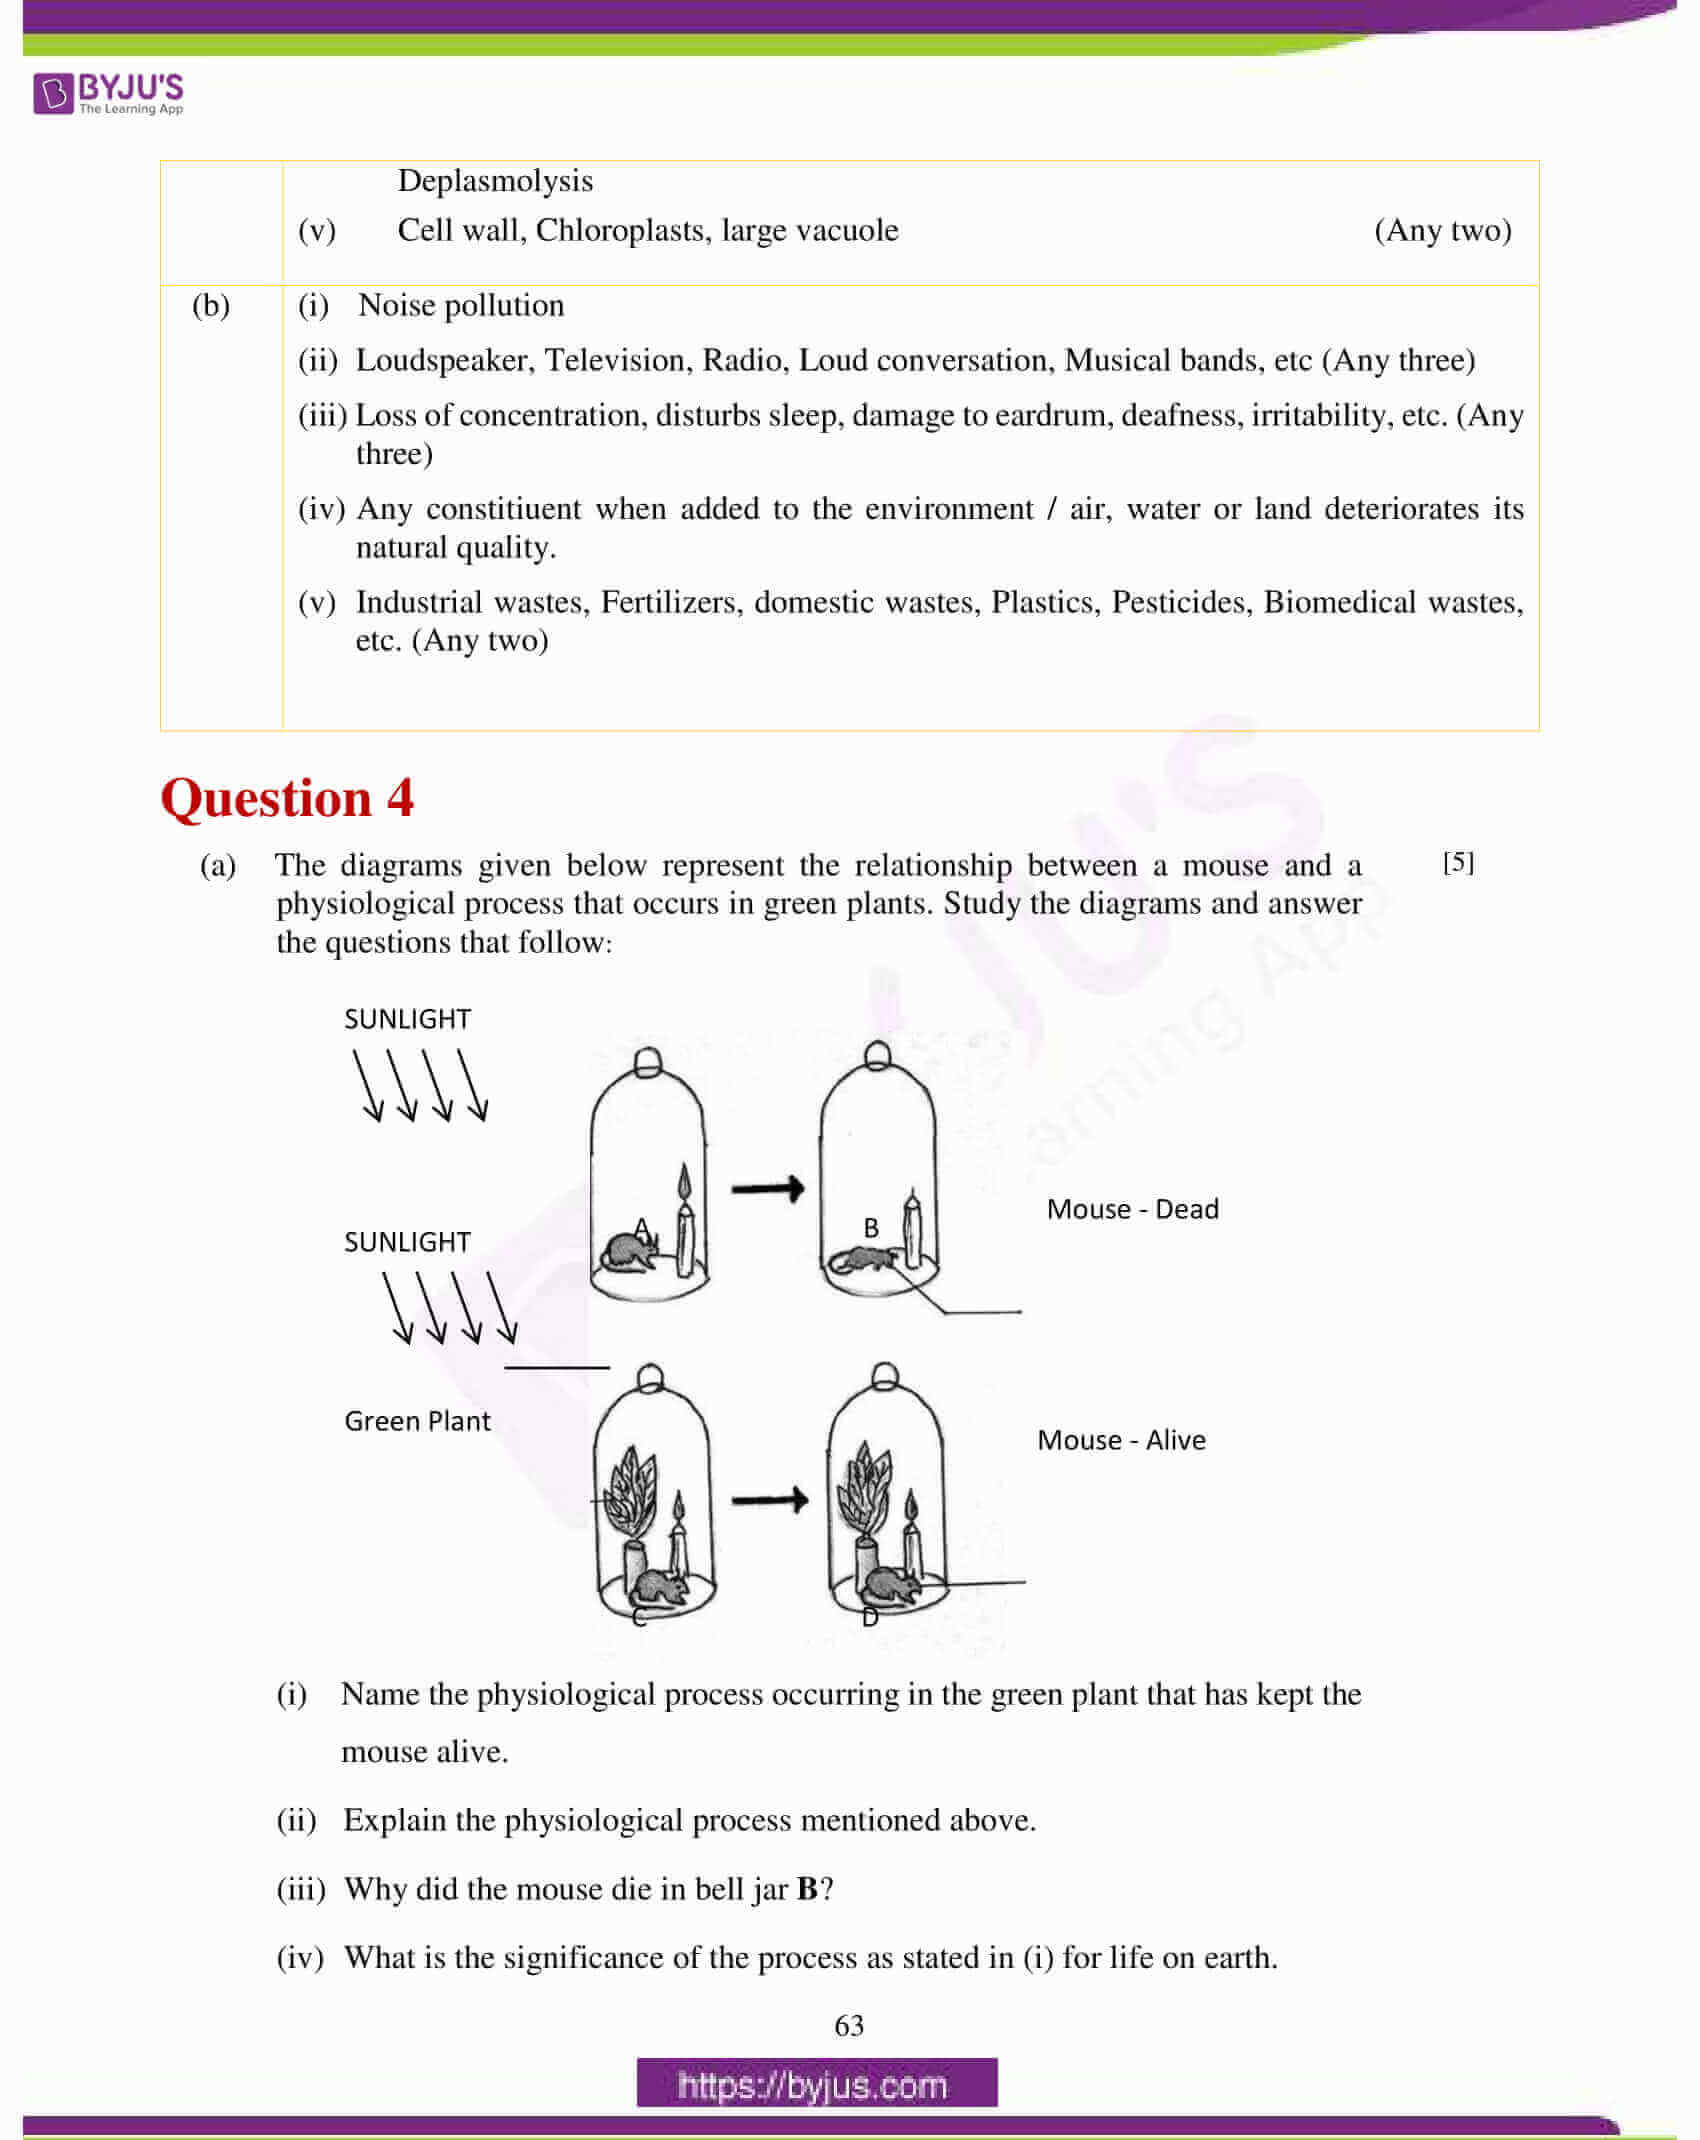 icse class 10 biology question paper solution 2017 13